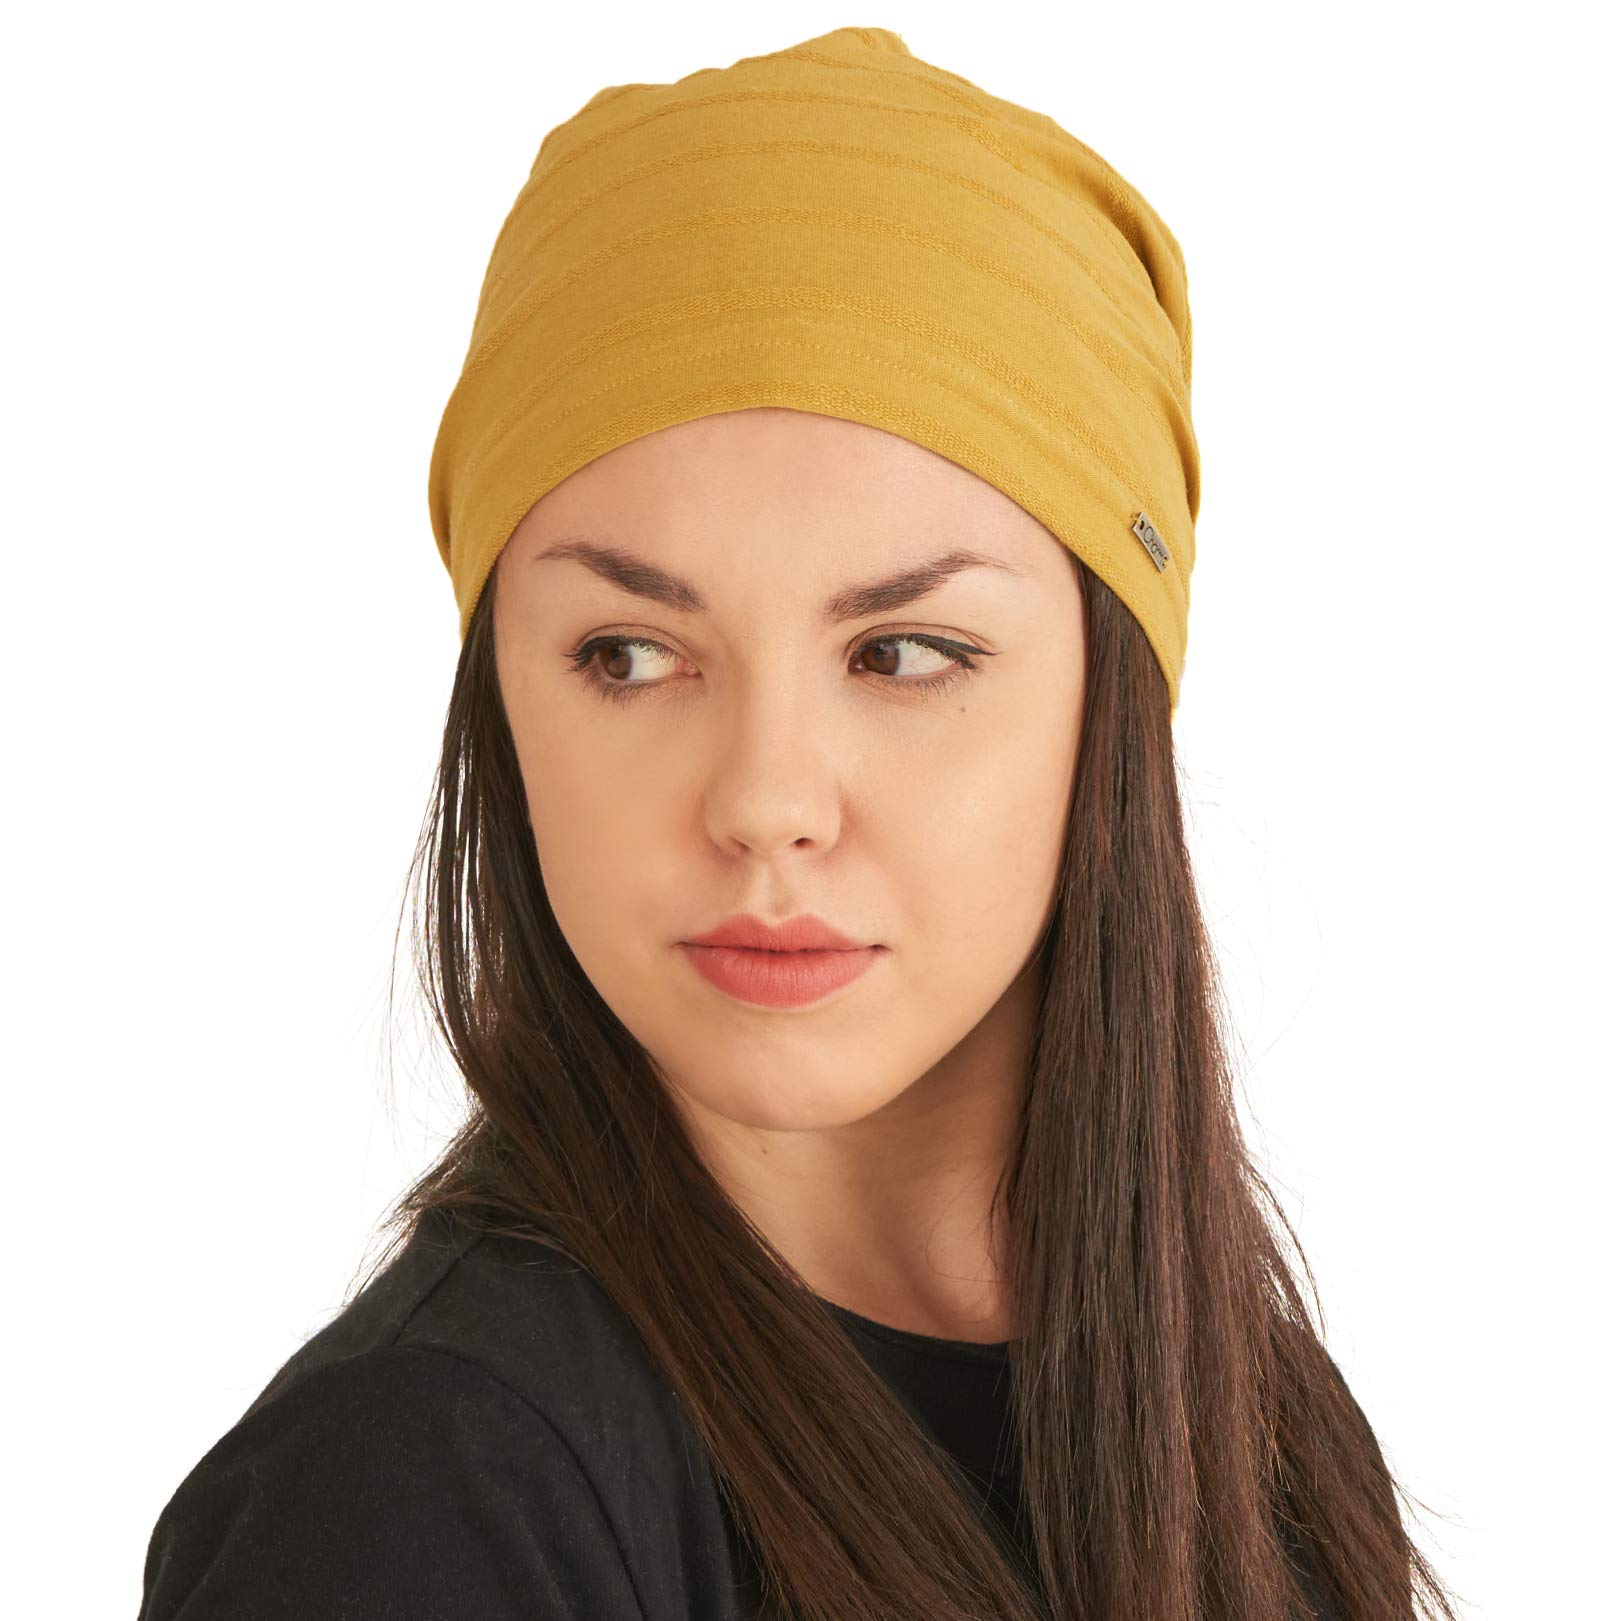 Womens Light Weight Summer Beanie - Mens Slouchy Beanie Hat Stretchy Slouch Knit Cap 100% Cotton Chemo Hat Mustard